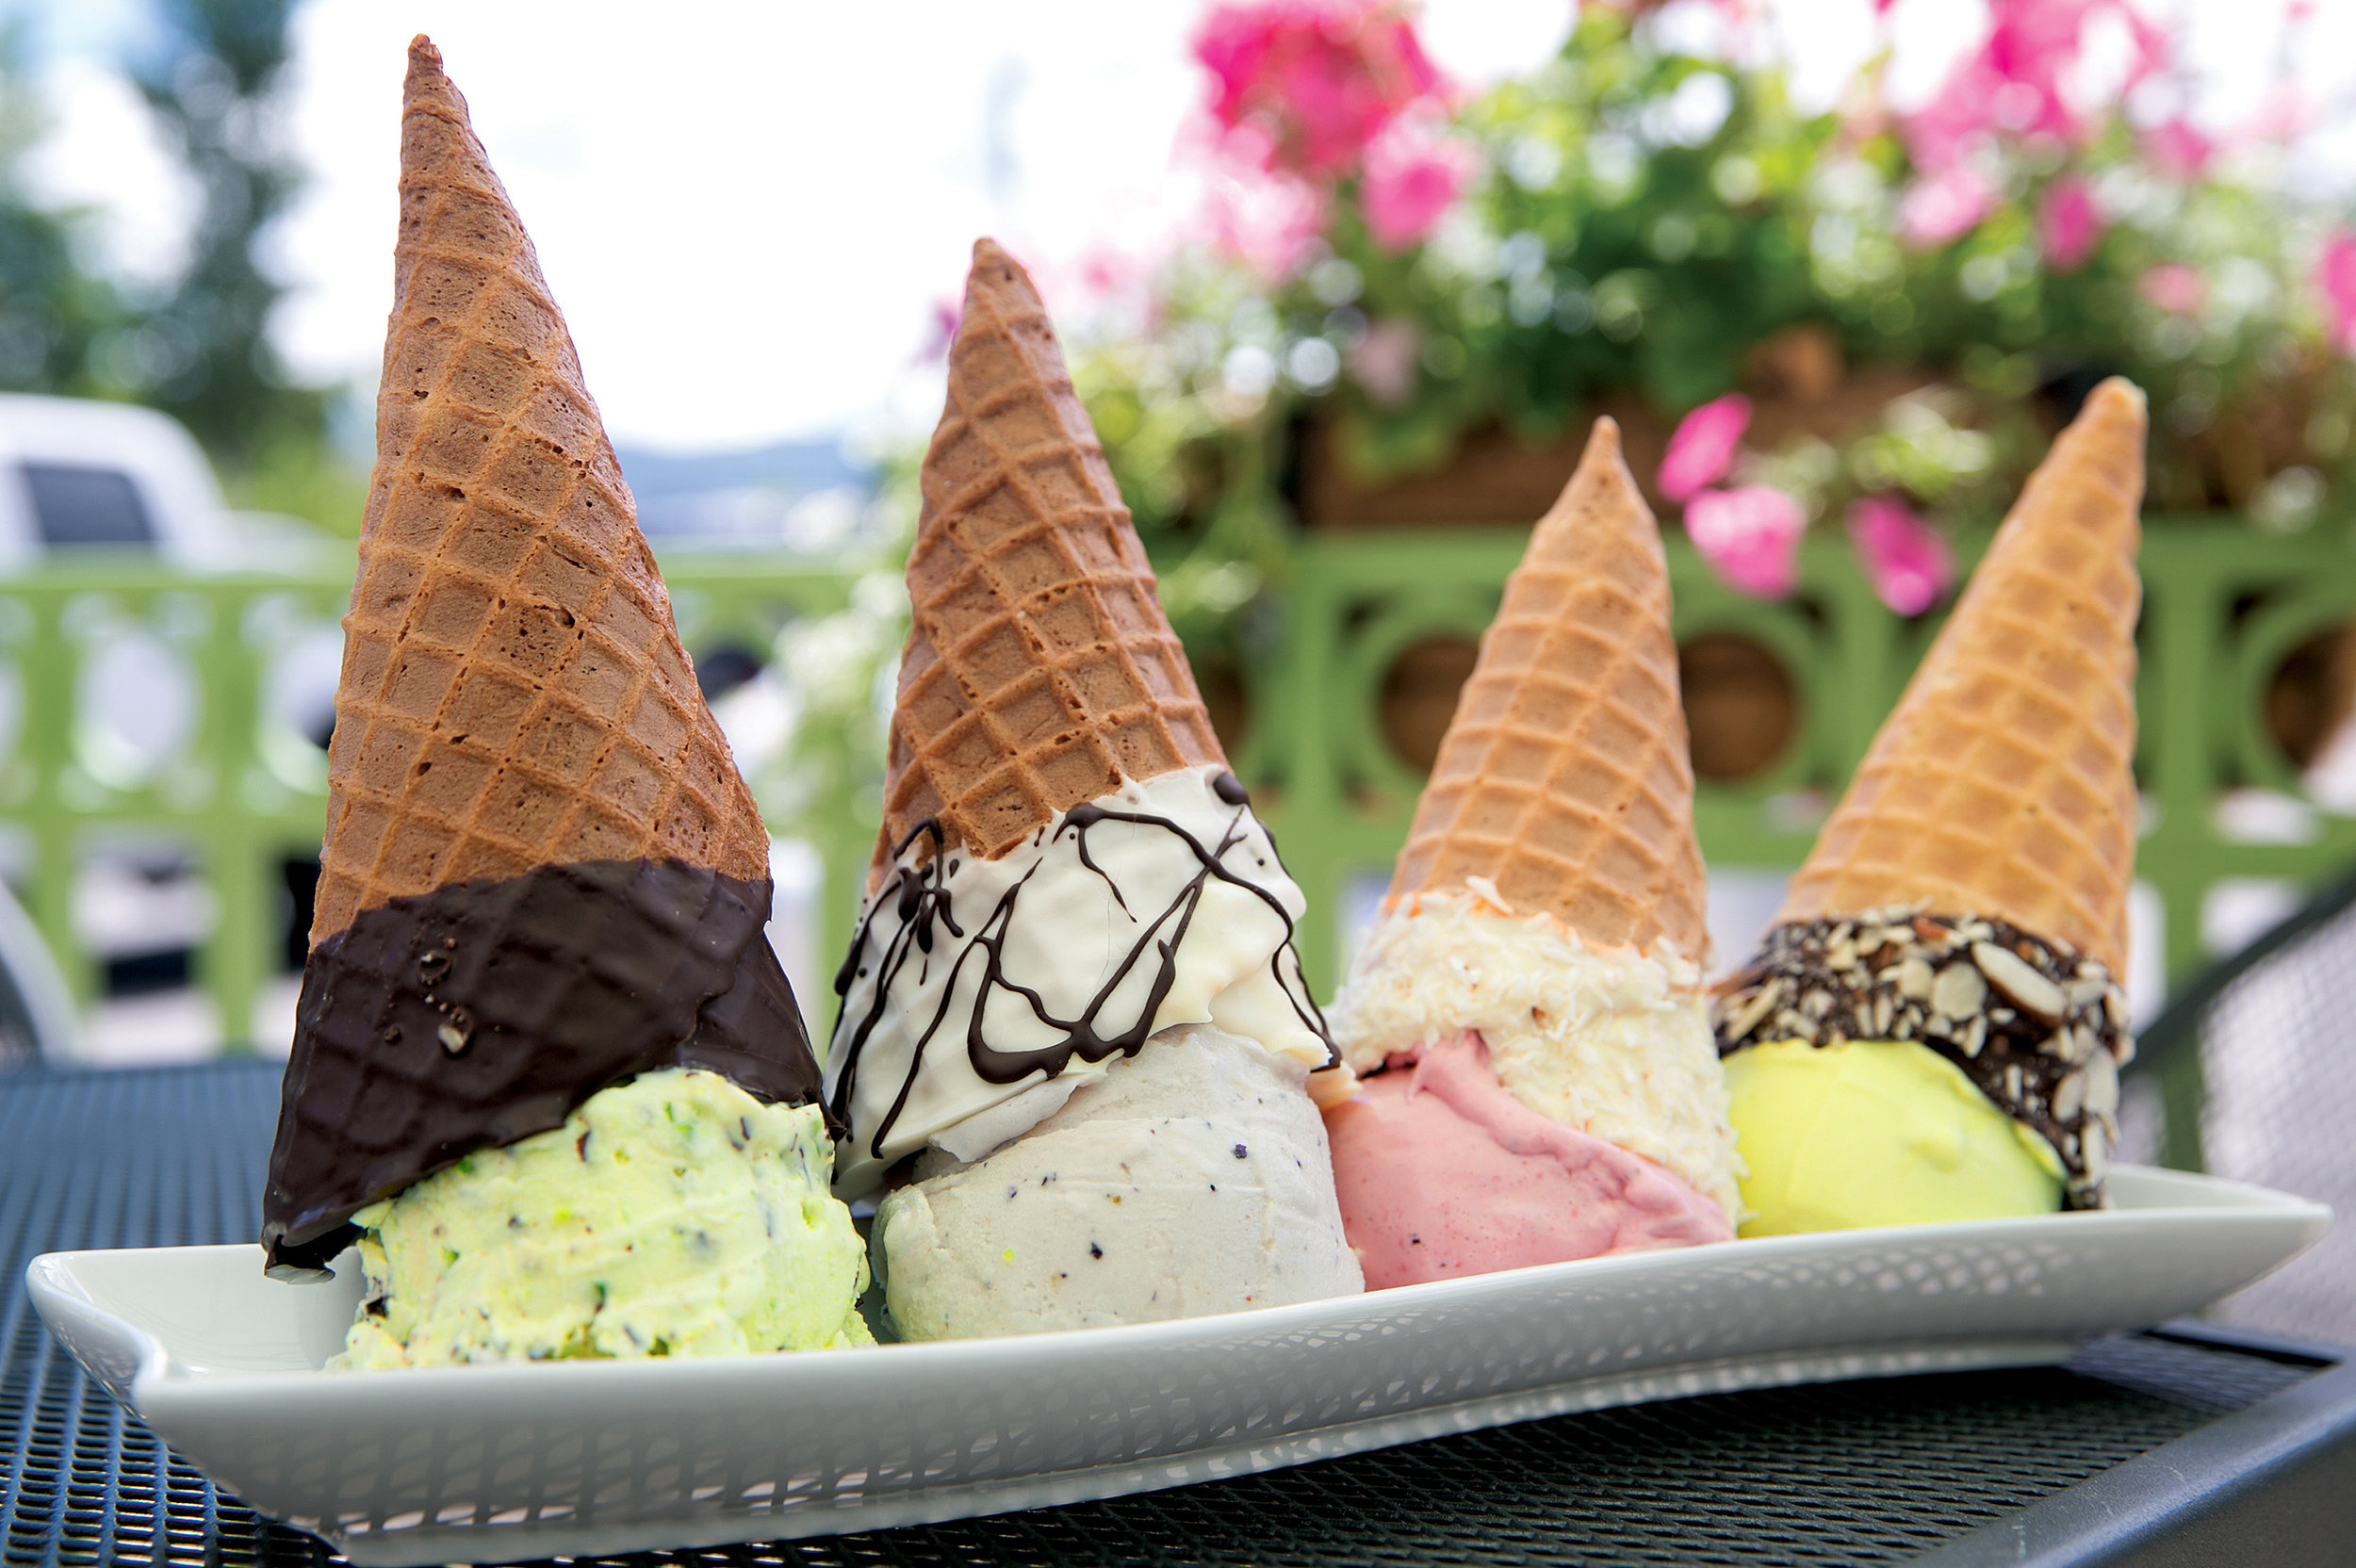 Delicious homemade gluten free, chocolate dipped, or regular cones.